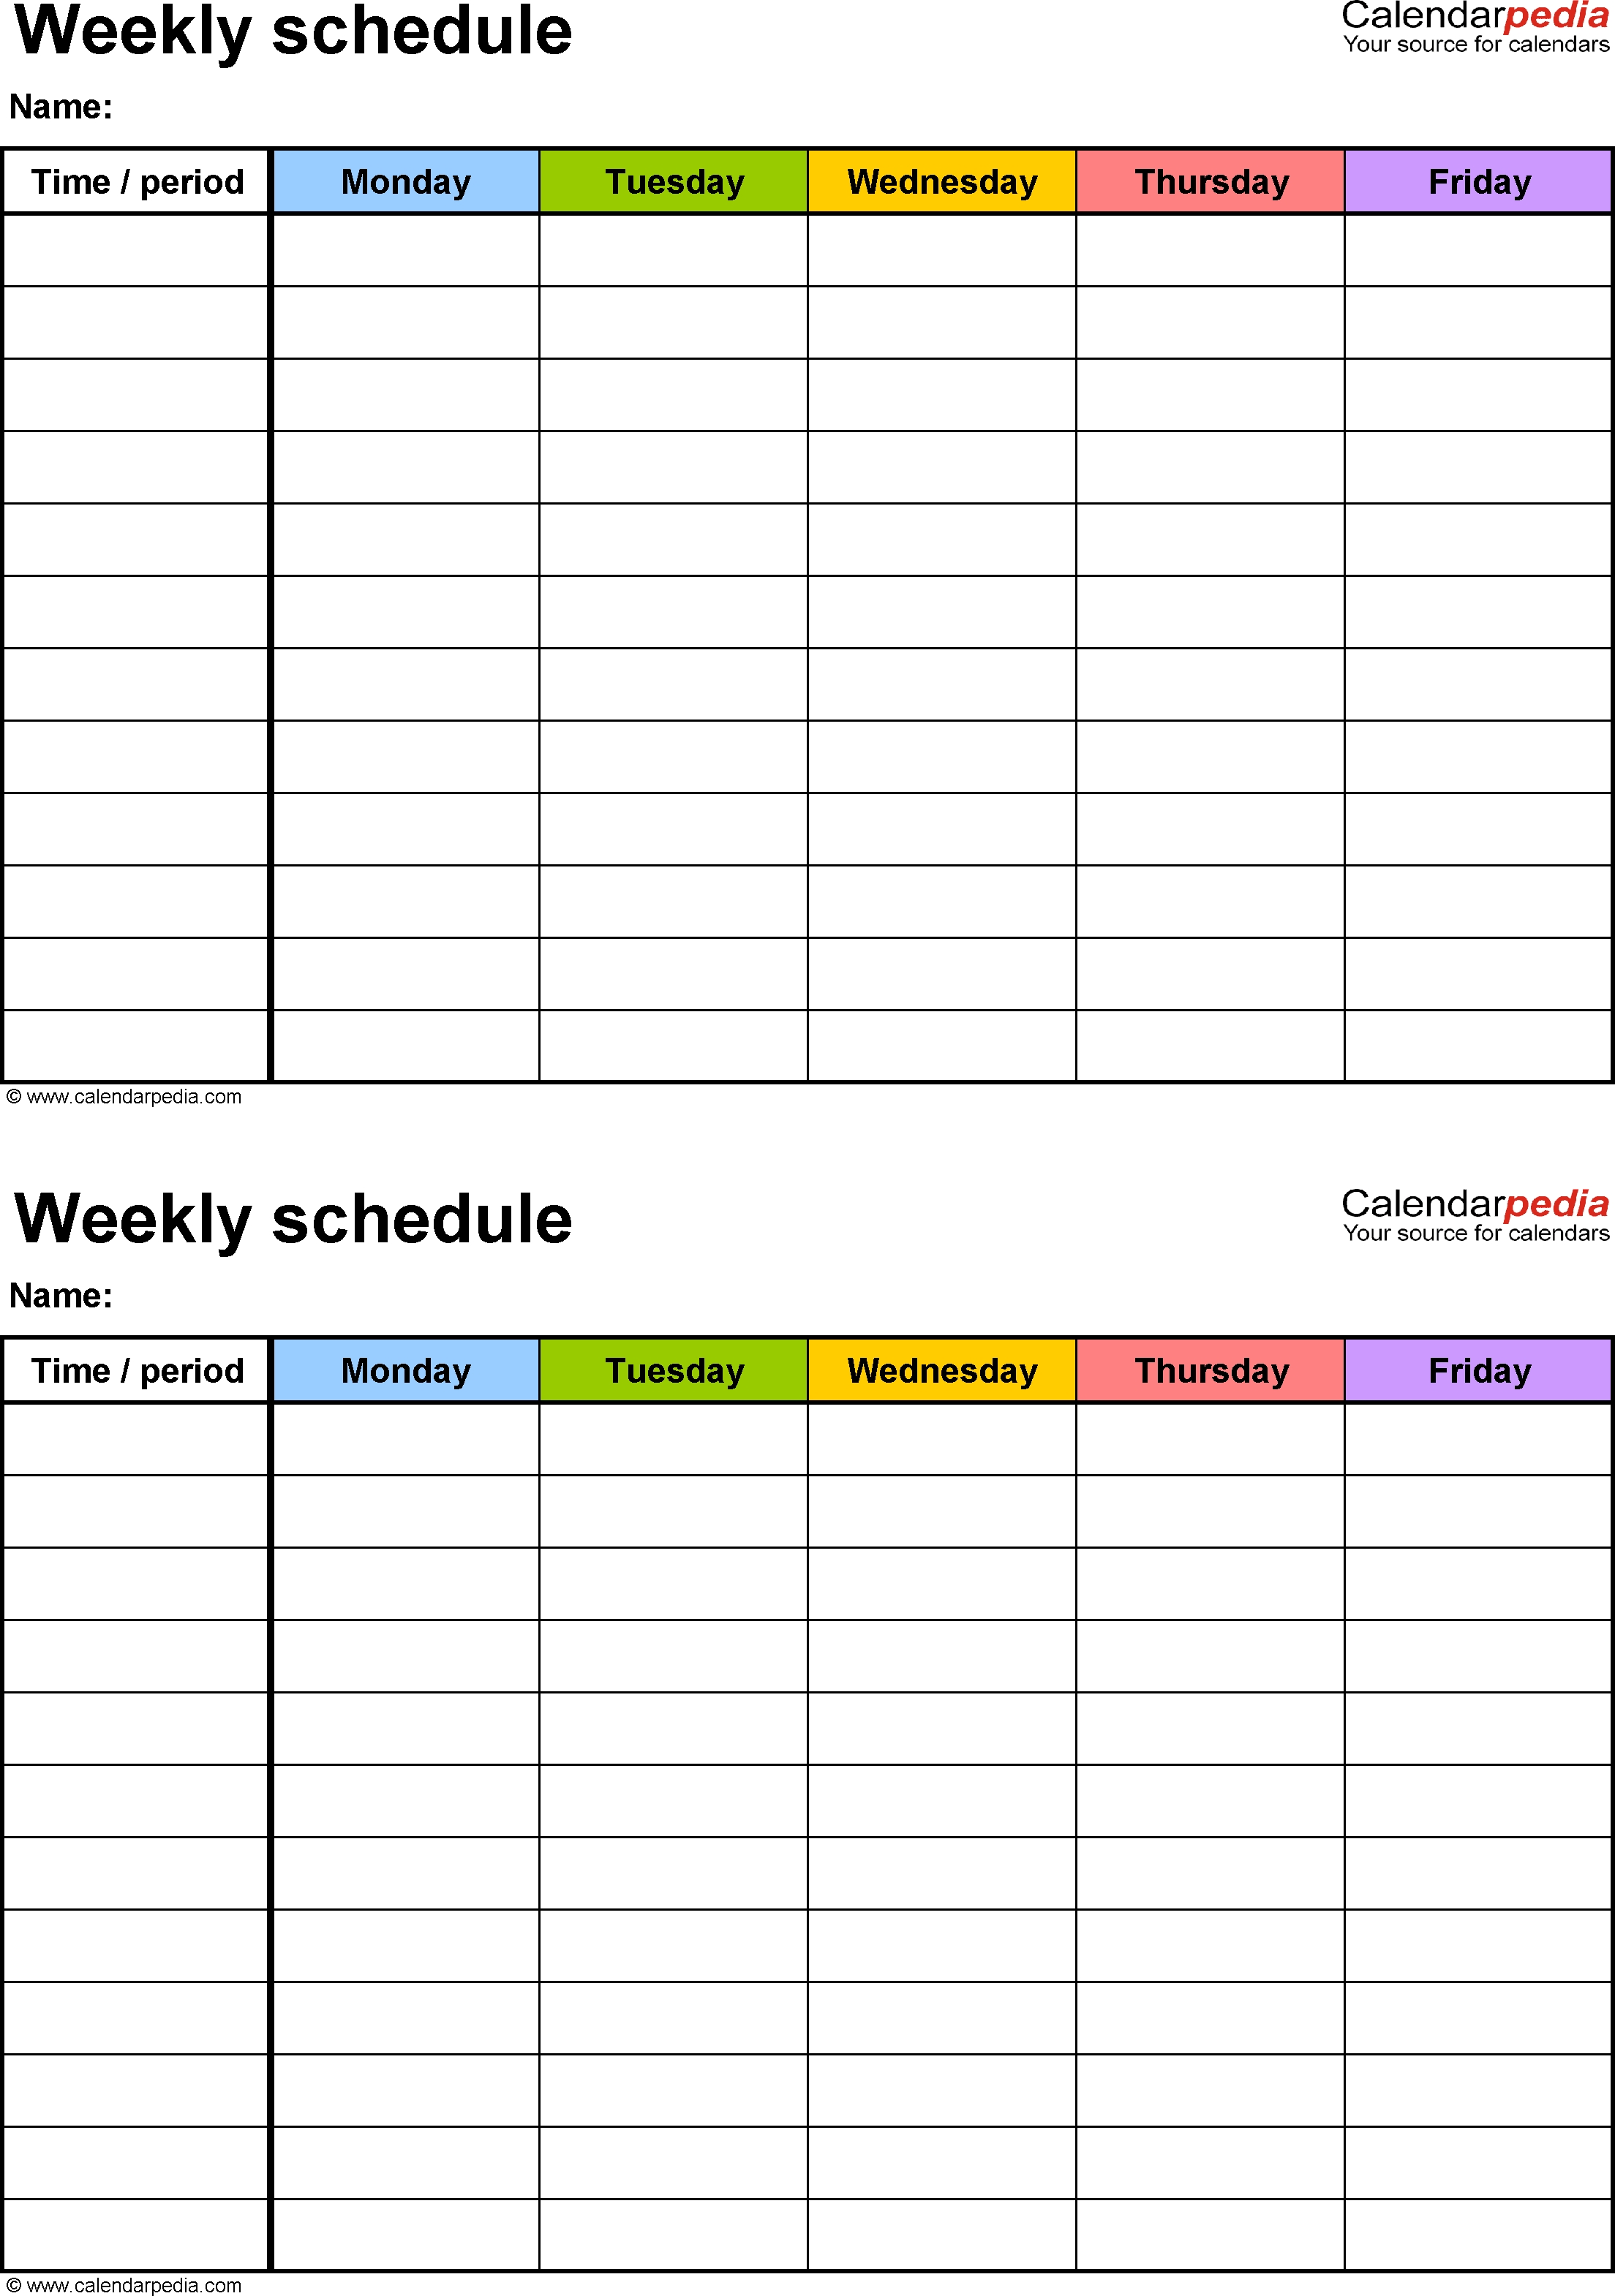 Free Weekly Schedule Templates For Word - 18 Templates-Monday To Sunday Weekly Planner Template Word